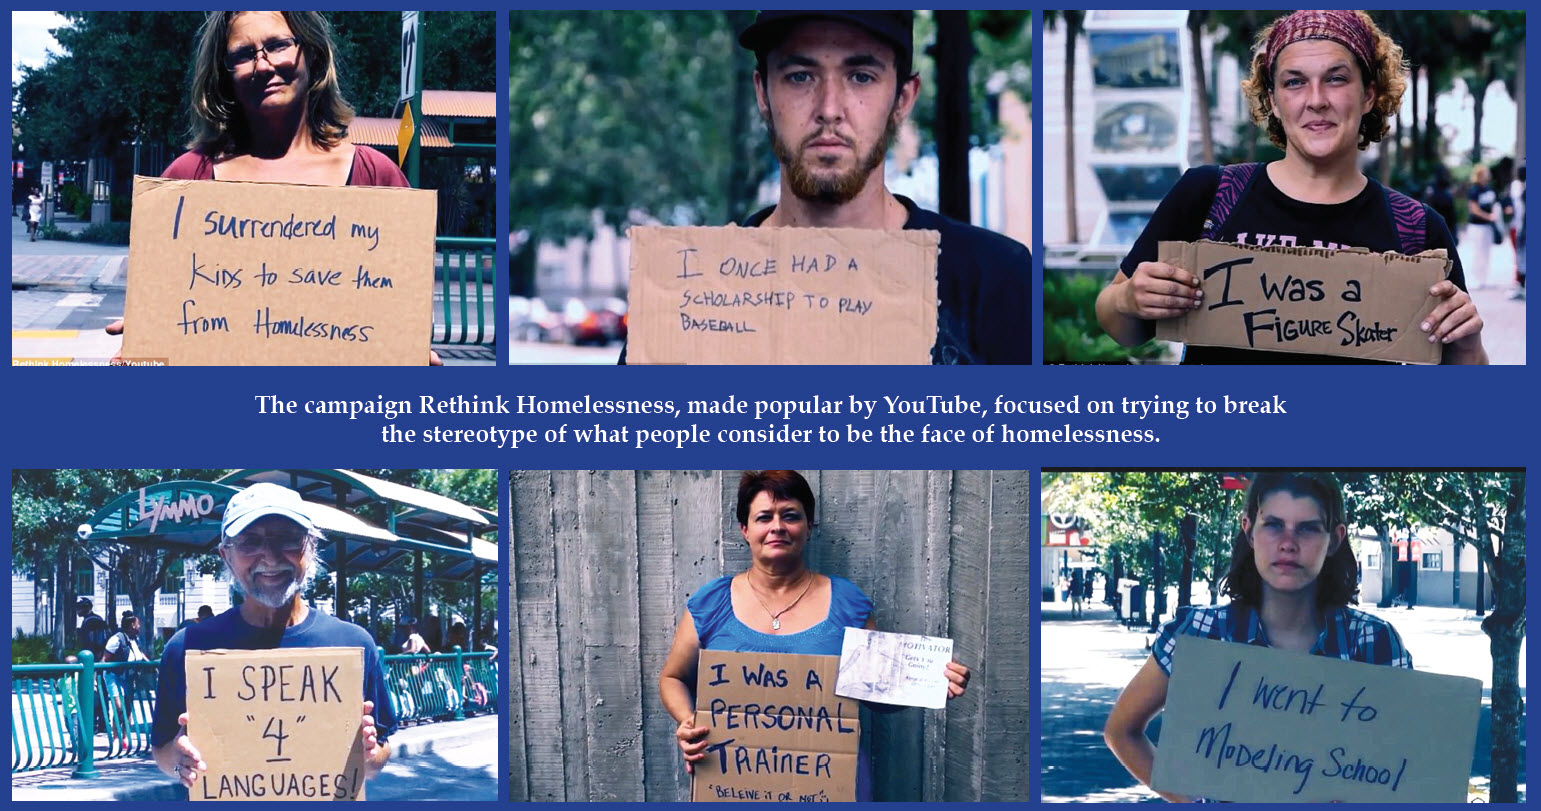 7 Myths About Homelessness